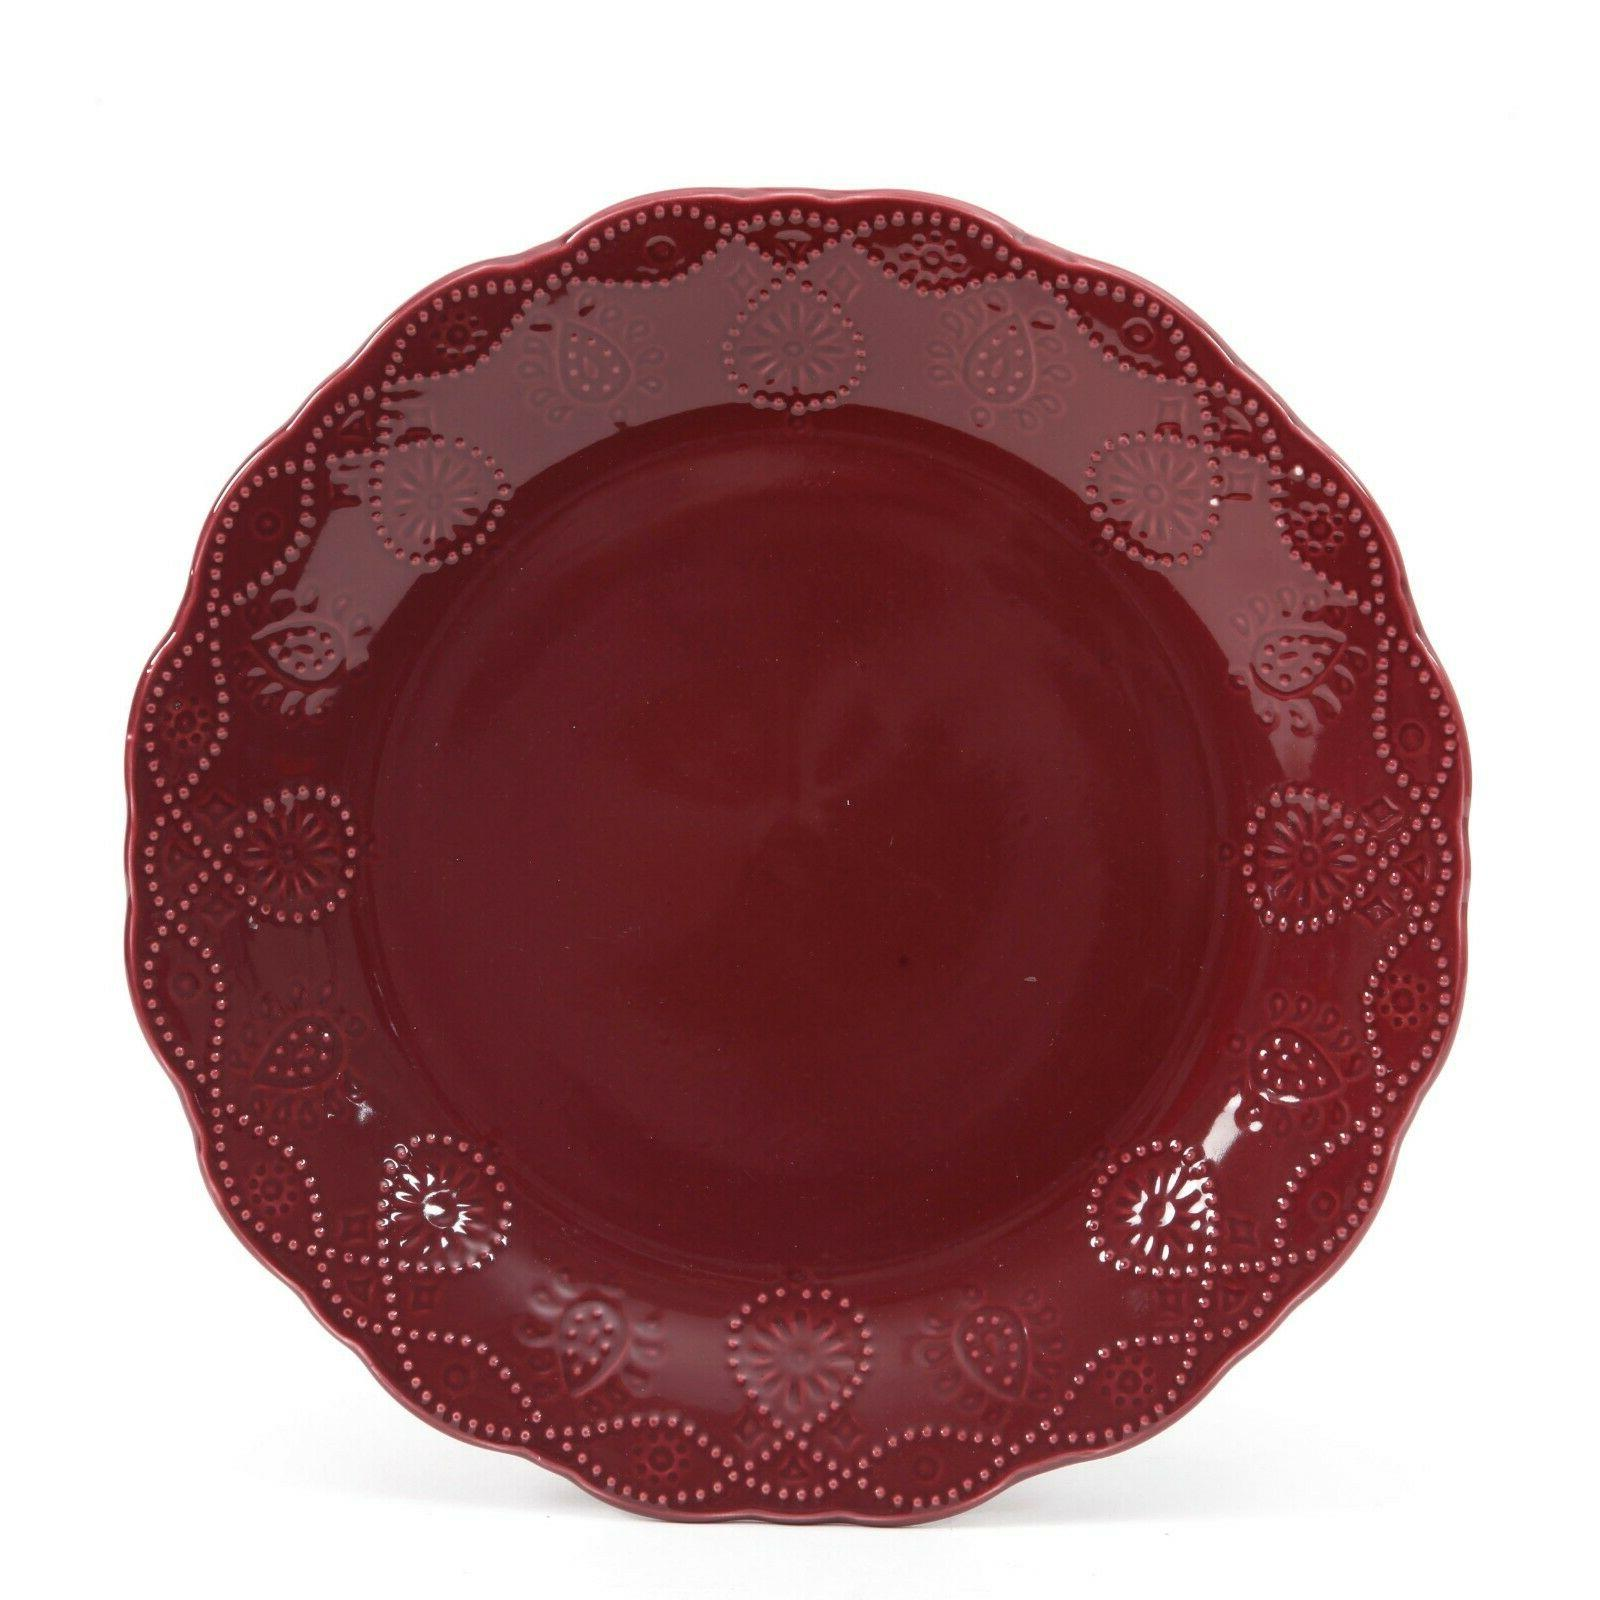 12-PC Lace Set, Dishes and